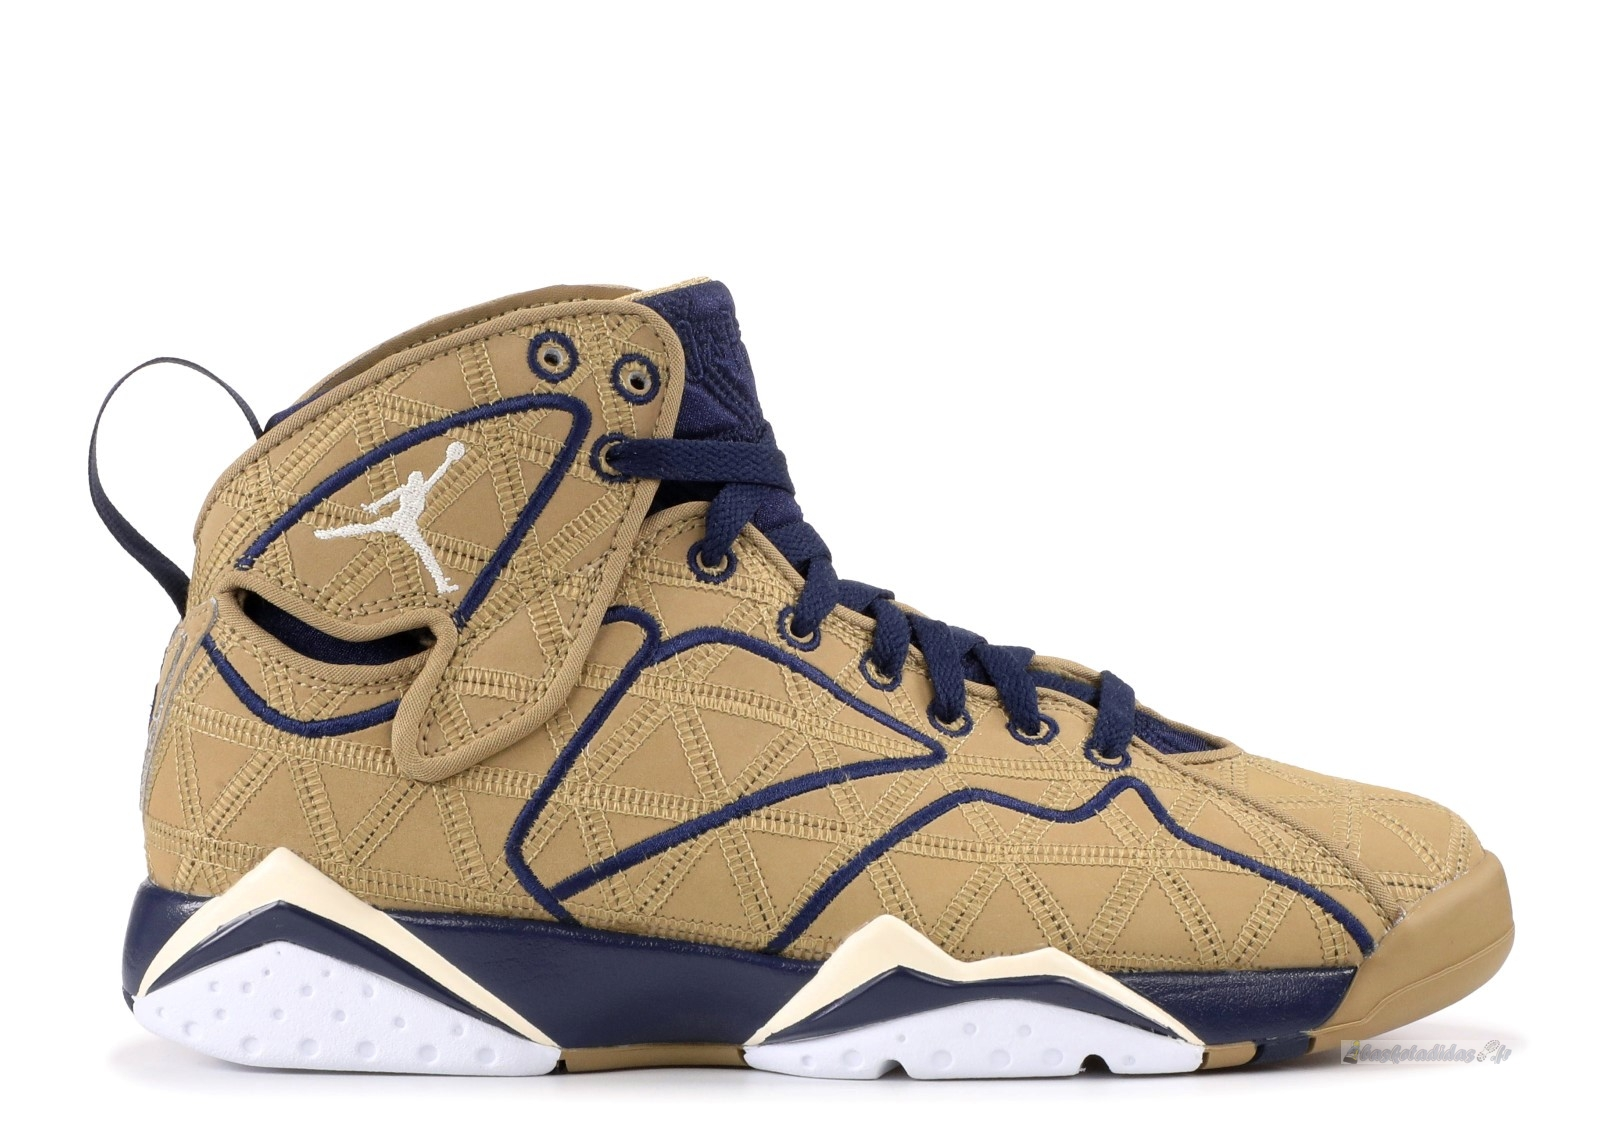 "Chaussure de Basket Air Jordan 7 Retro J2K ""Filbert"" Marron Blanc (543560-225)"